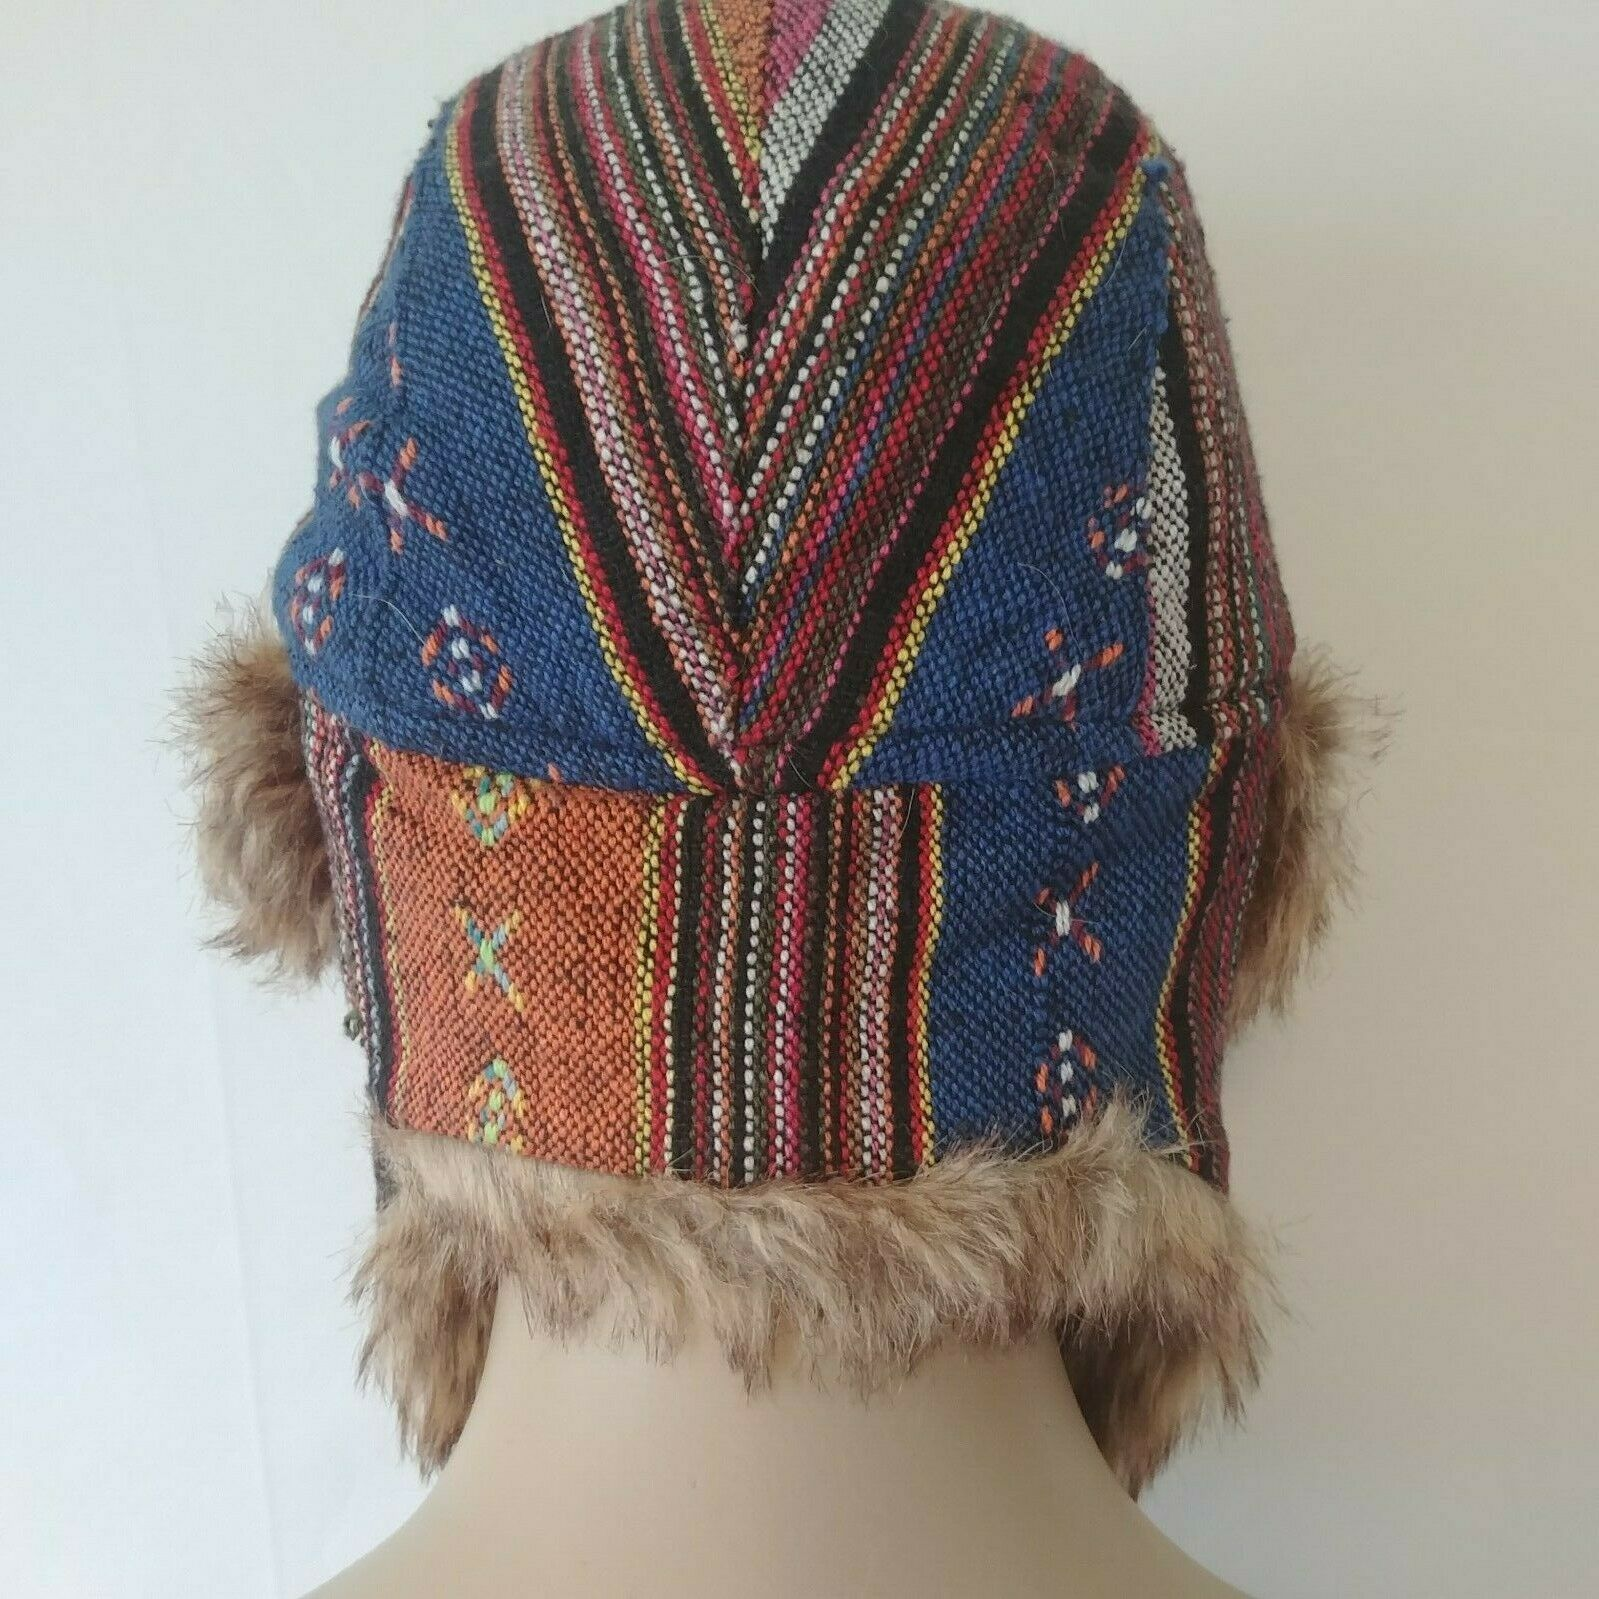 Adora Ushanka Hat With Ear Flaps Faux Fur Lining One Size Multi-Color Unisex